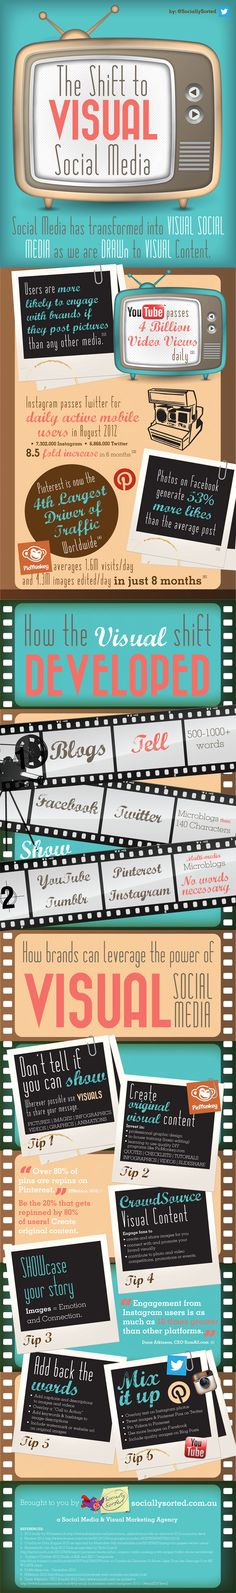 6 Tips for Being More Visual With Social Media {infographic}